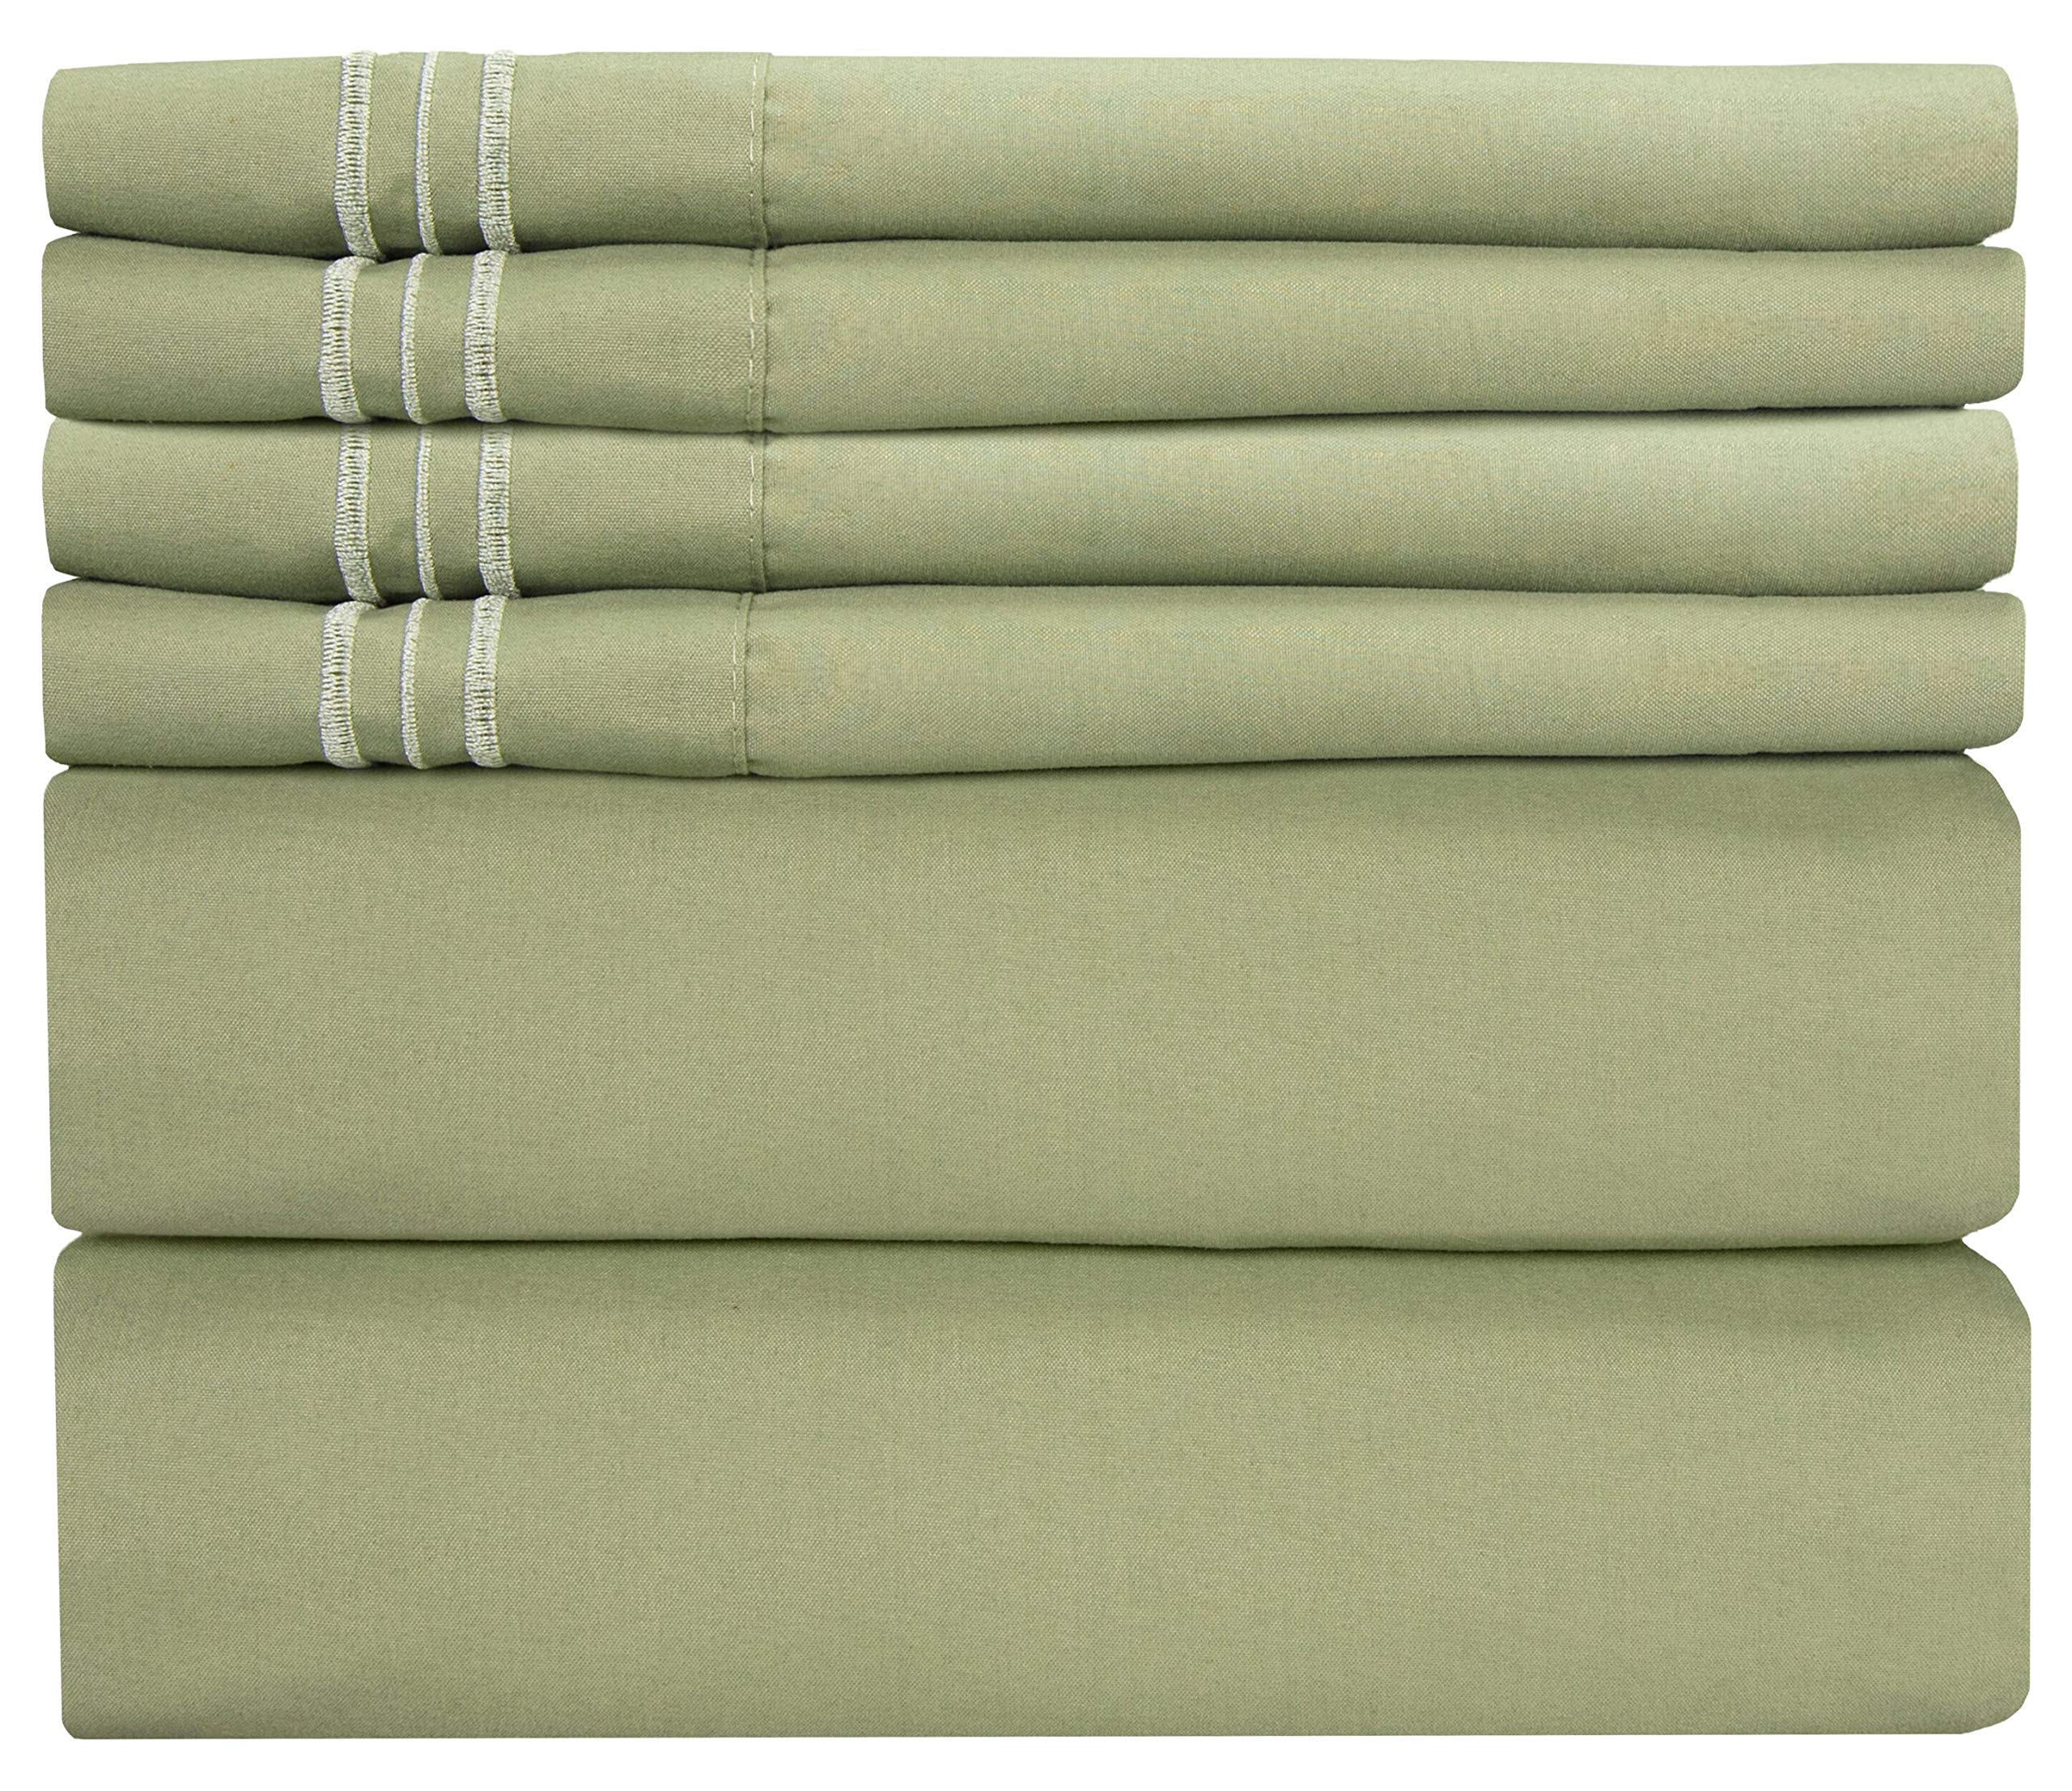 Full Size Sheet Set - 6 Piece Set - Hotel Luxury Bed Sheets - Extra Soft - Deep Pockets - Easy Fit - Breathable & Cooling Sheets - Wrinkle Free - Green - Sage Green Bed Sheets - Fulls Sheets - 6 PC by CGK Unlimited